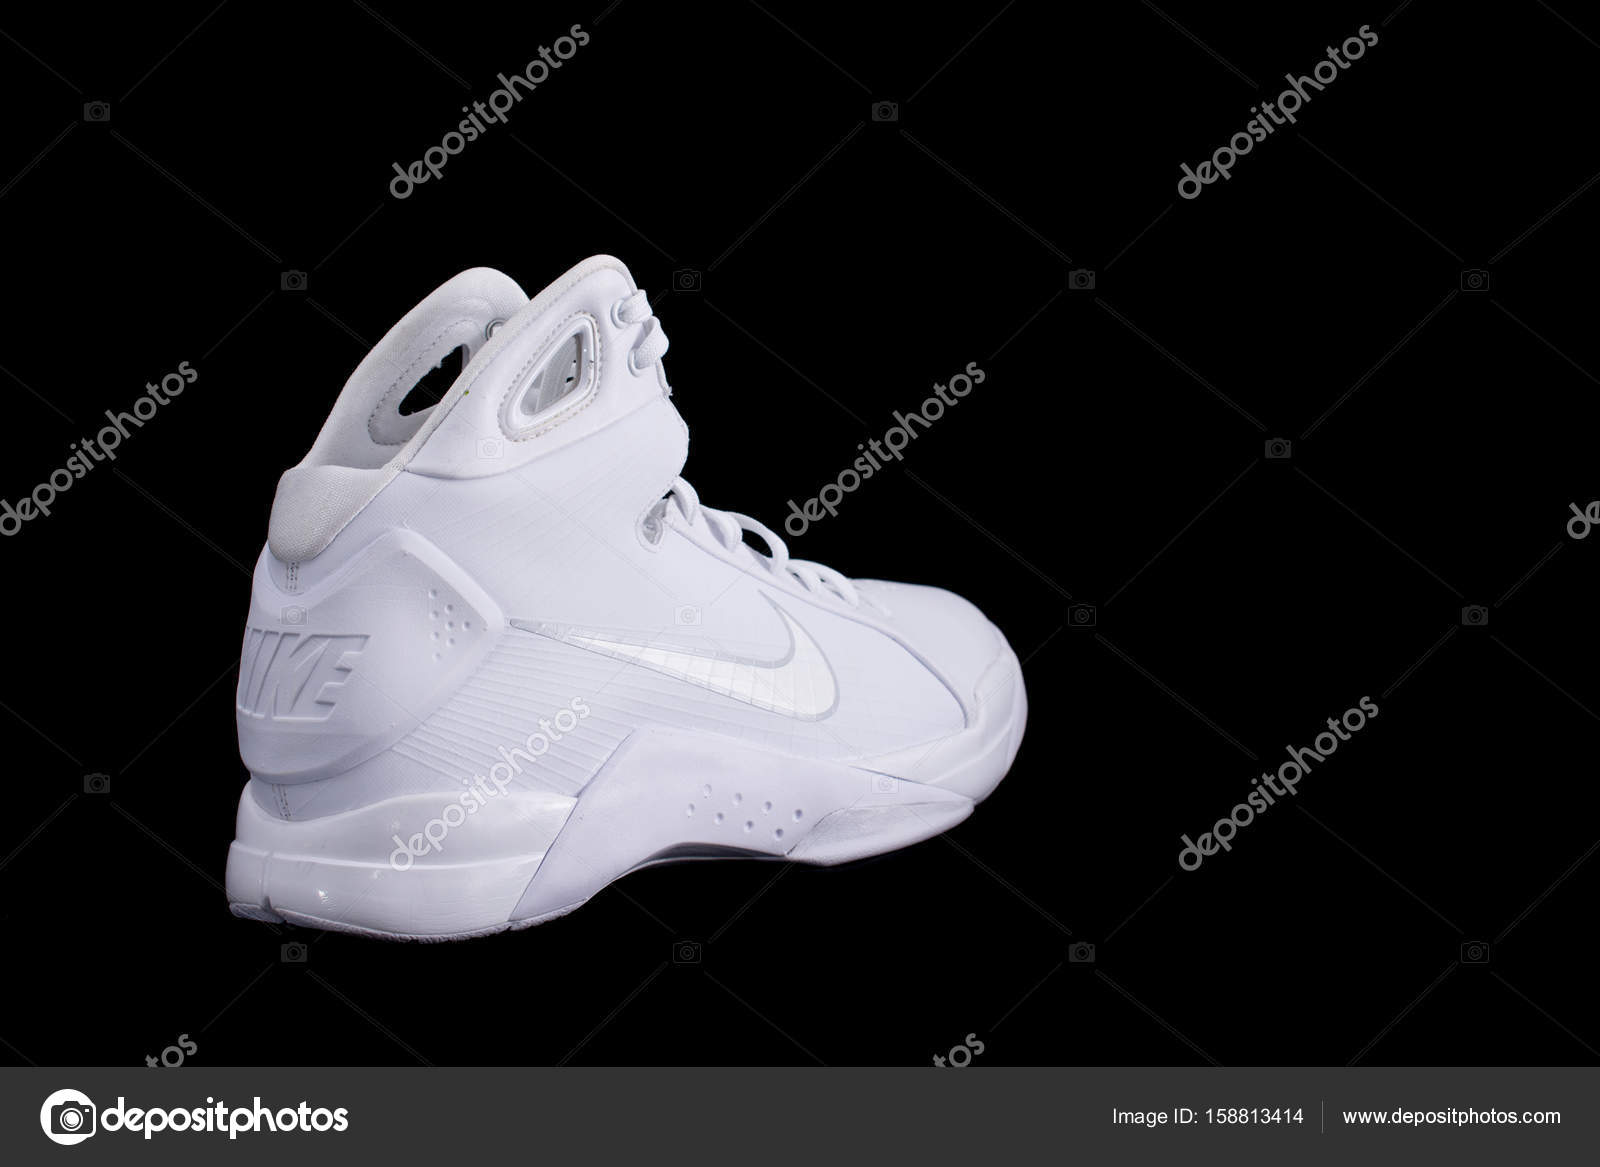 High Basketball Top Schuhe Weiße Nike Hyperdunk Sneakers xBTwZnEn